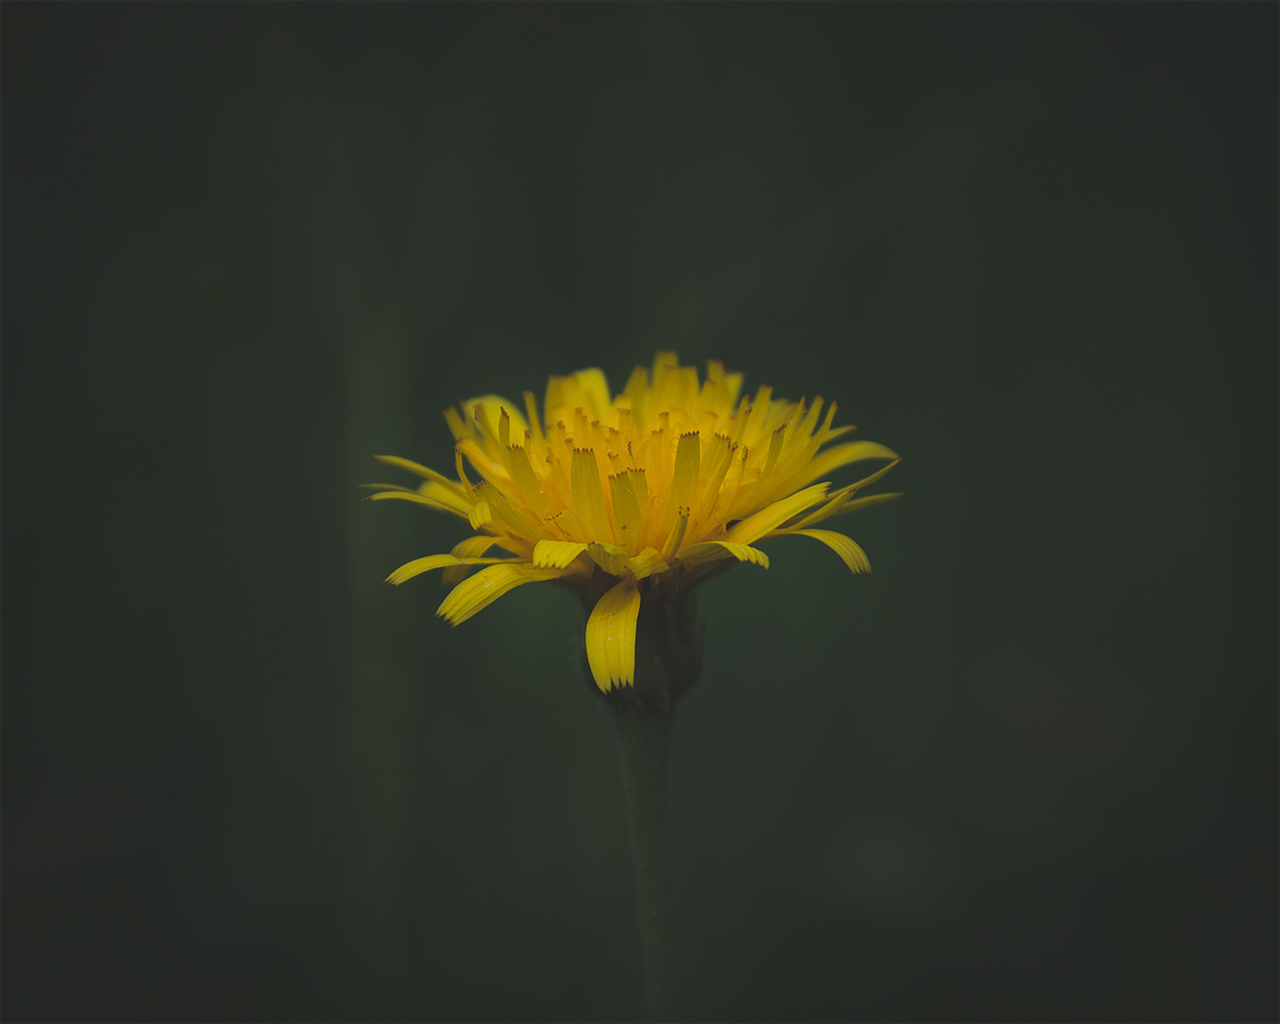 The Lonely Dandelion - free nature images to use - yellow, flowers, flower